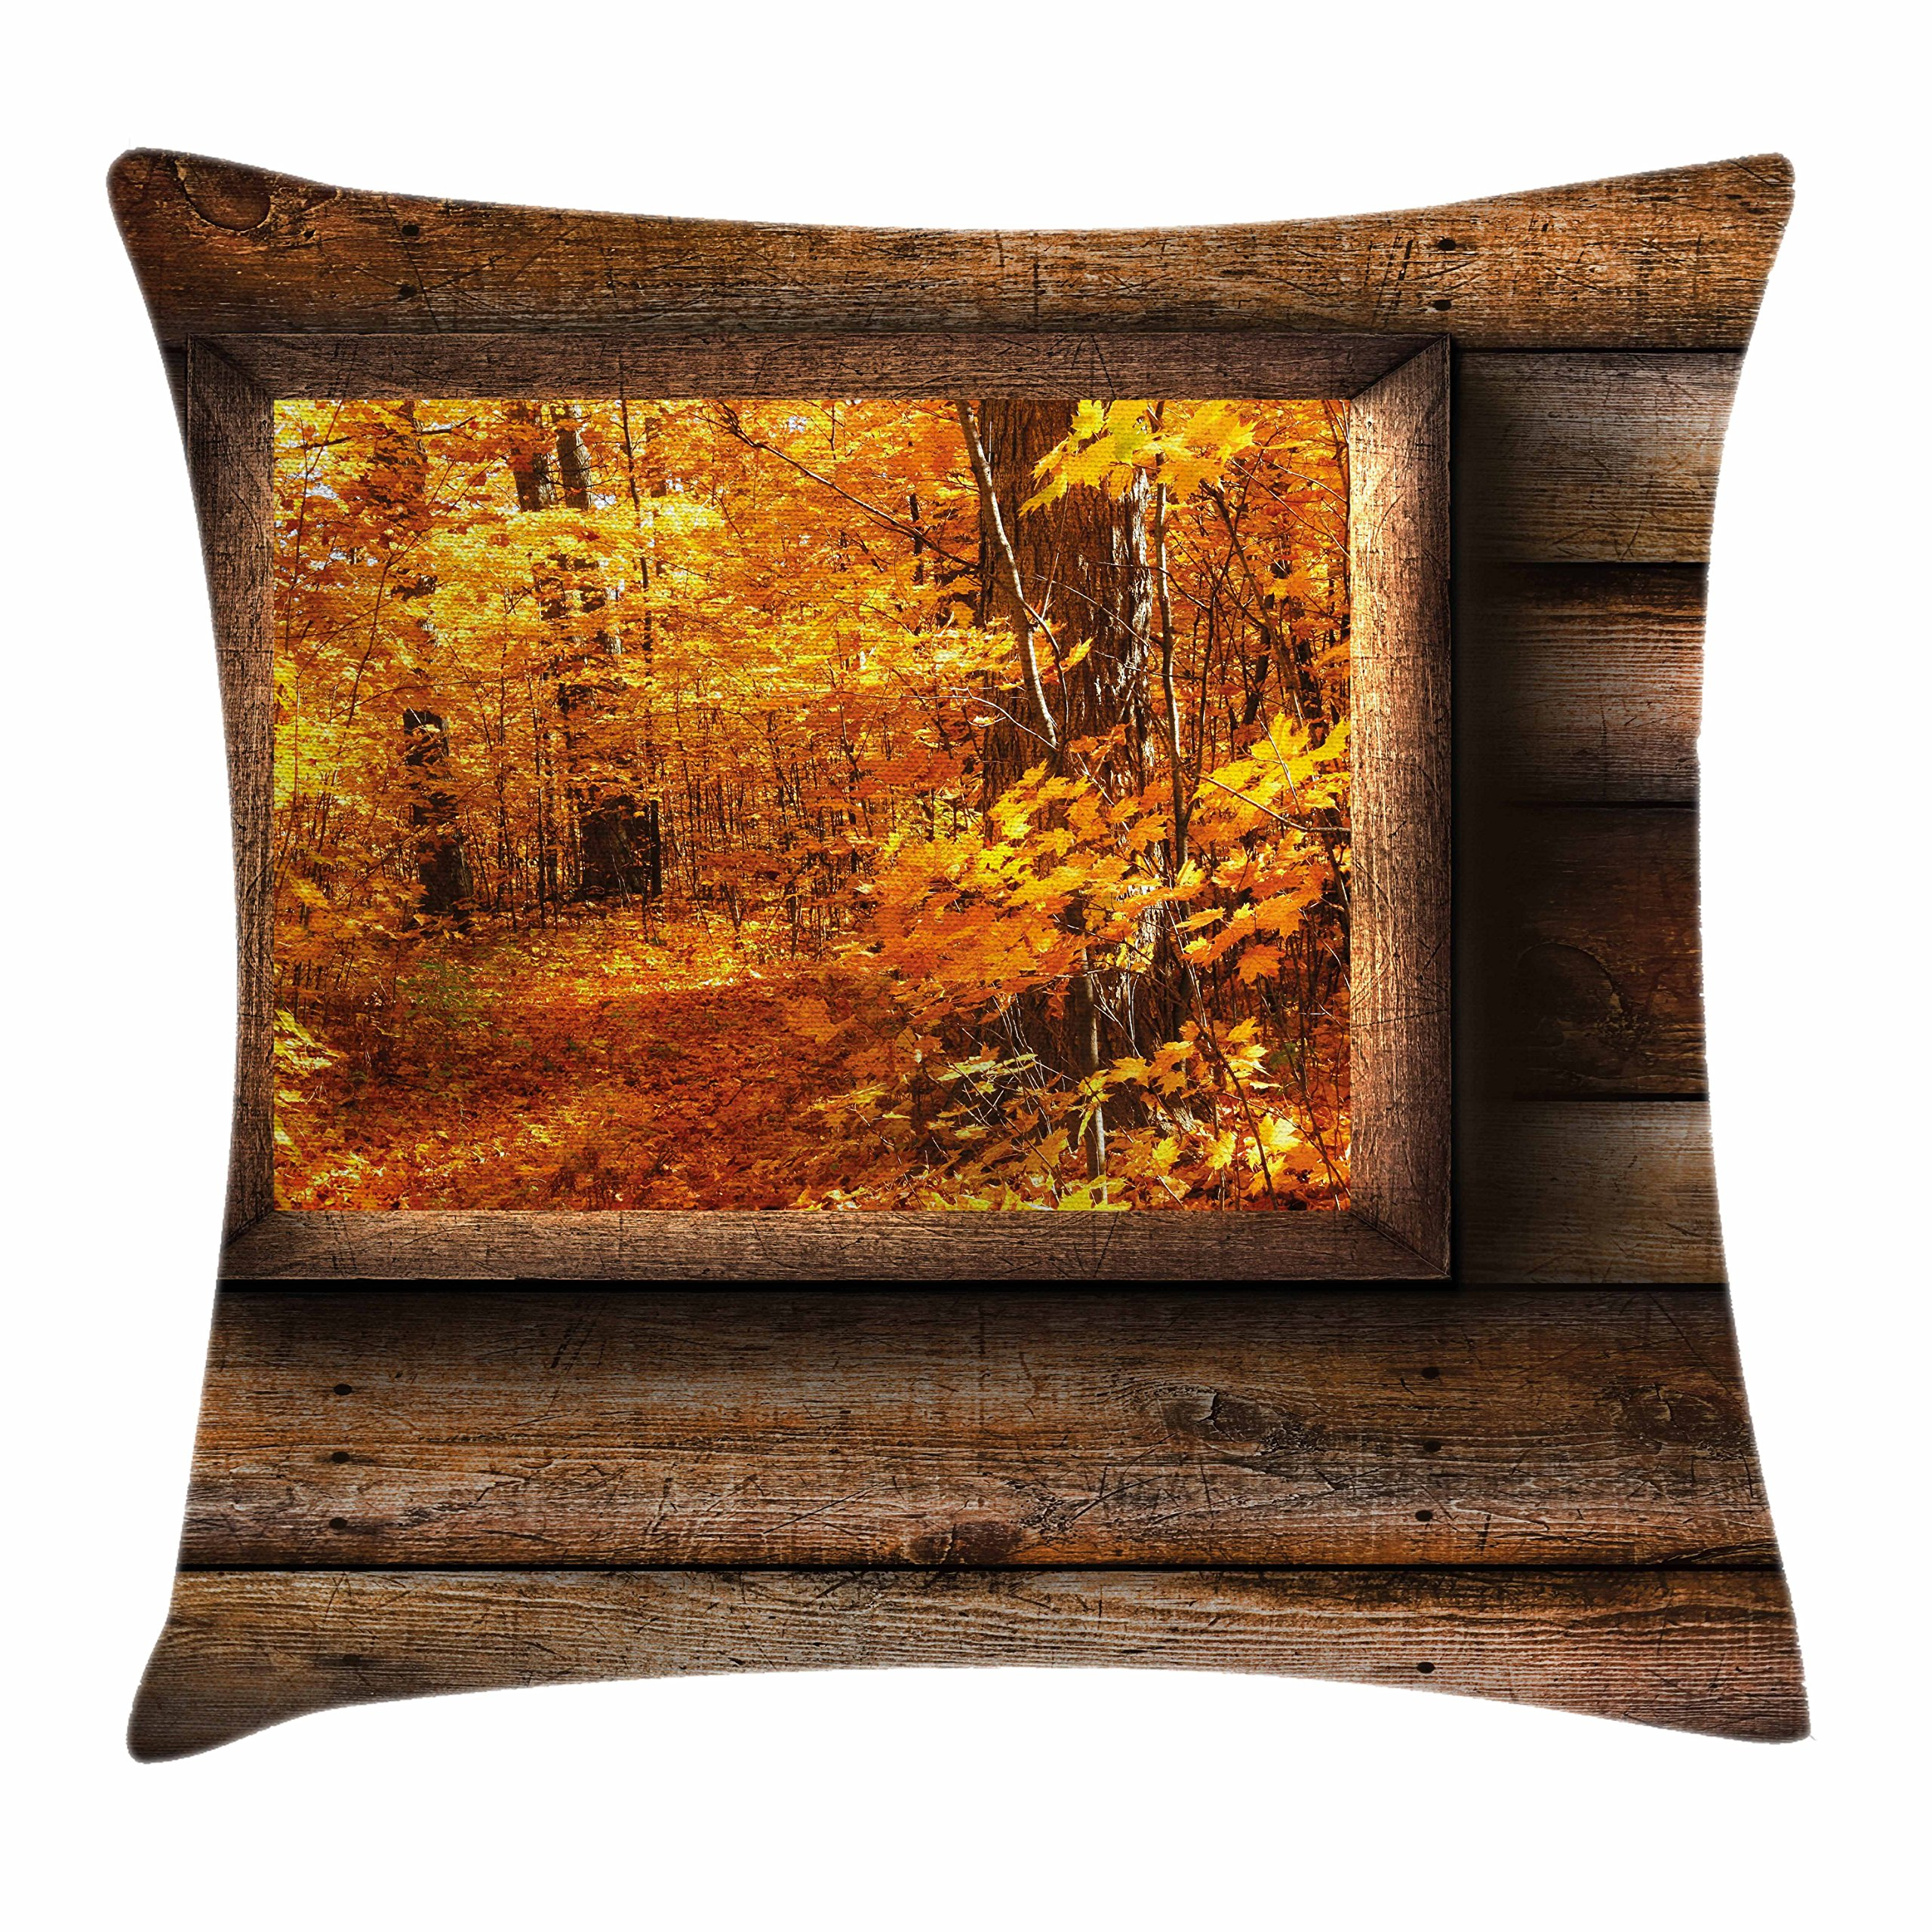 Ambesonne Fall Throw Pillow Cushion Cover, Fall Foliage View from Square Shaped Wooden Window Inside Cottage Rustic Life Photo, Decorative Square Accent Pillow Case, 26 X 26 inches, Orange Brown